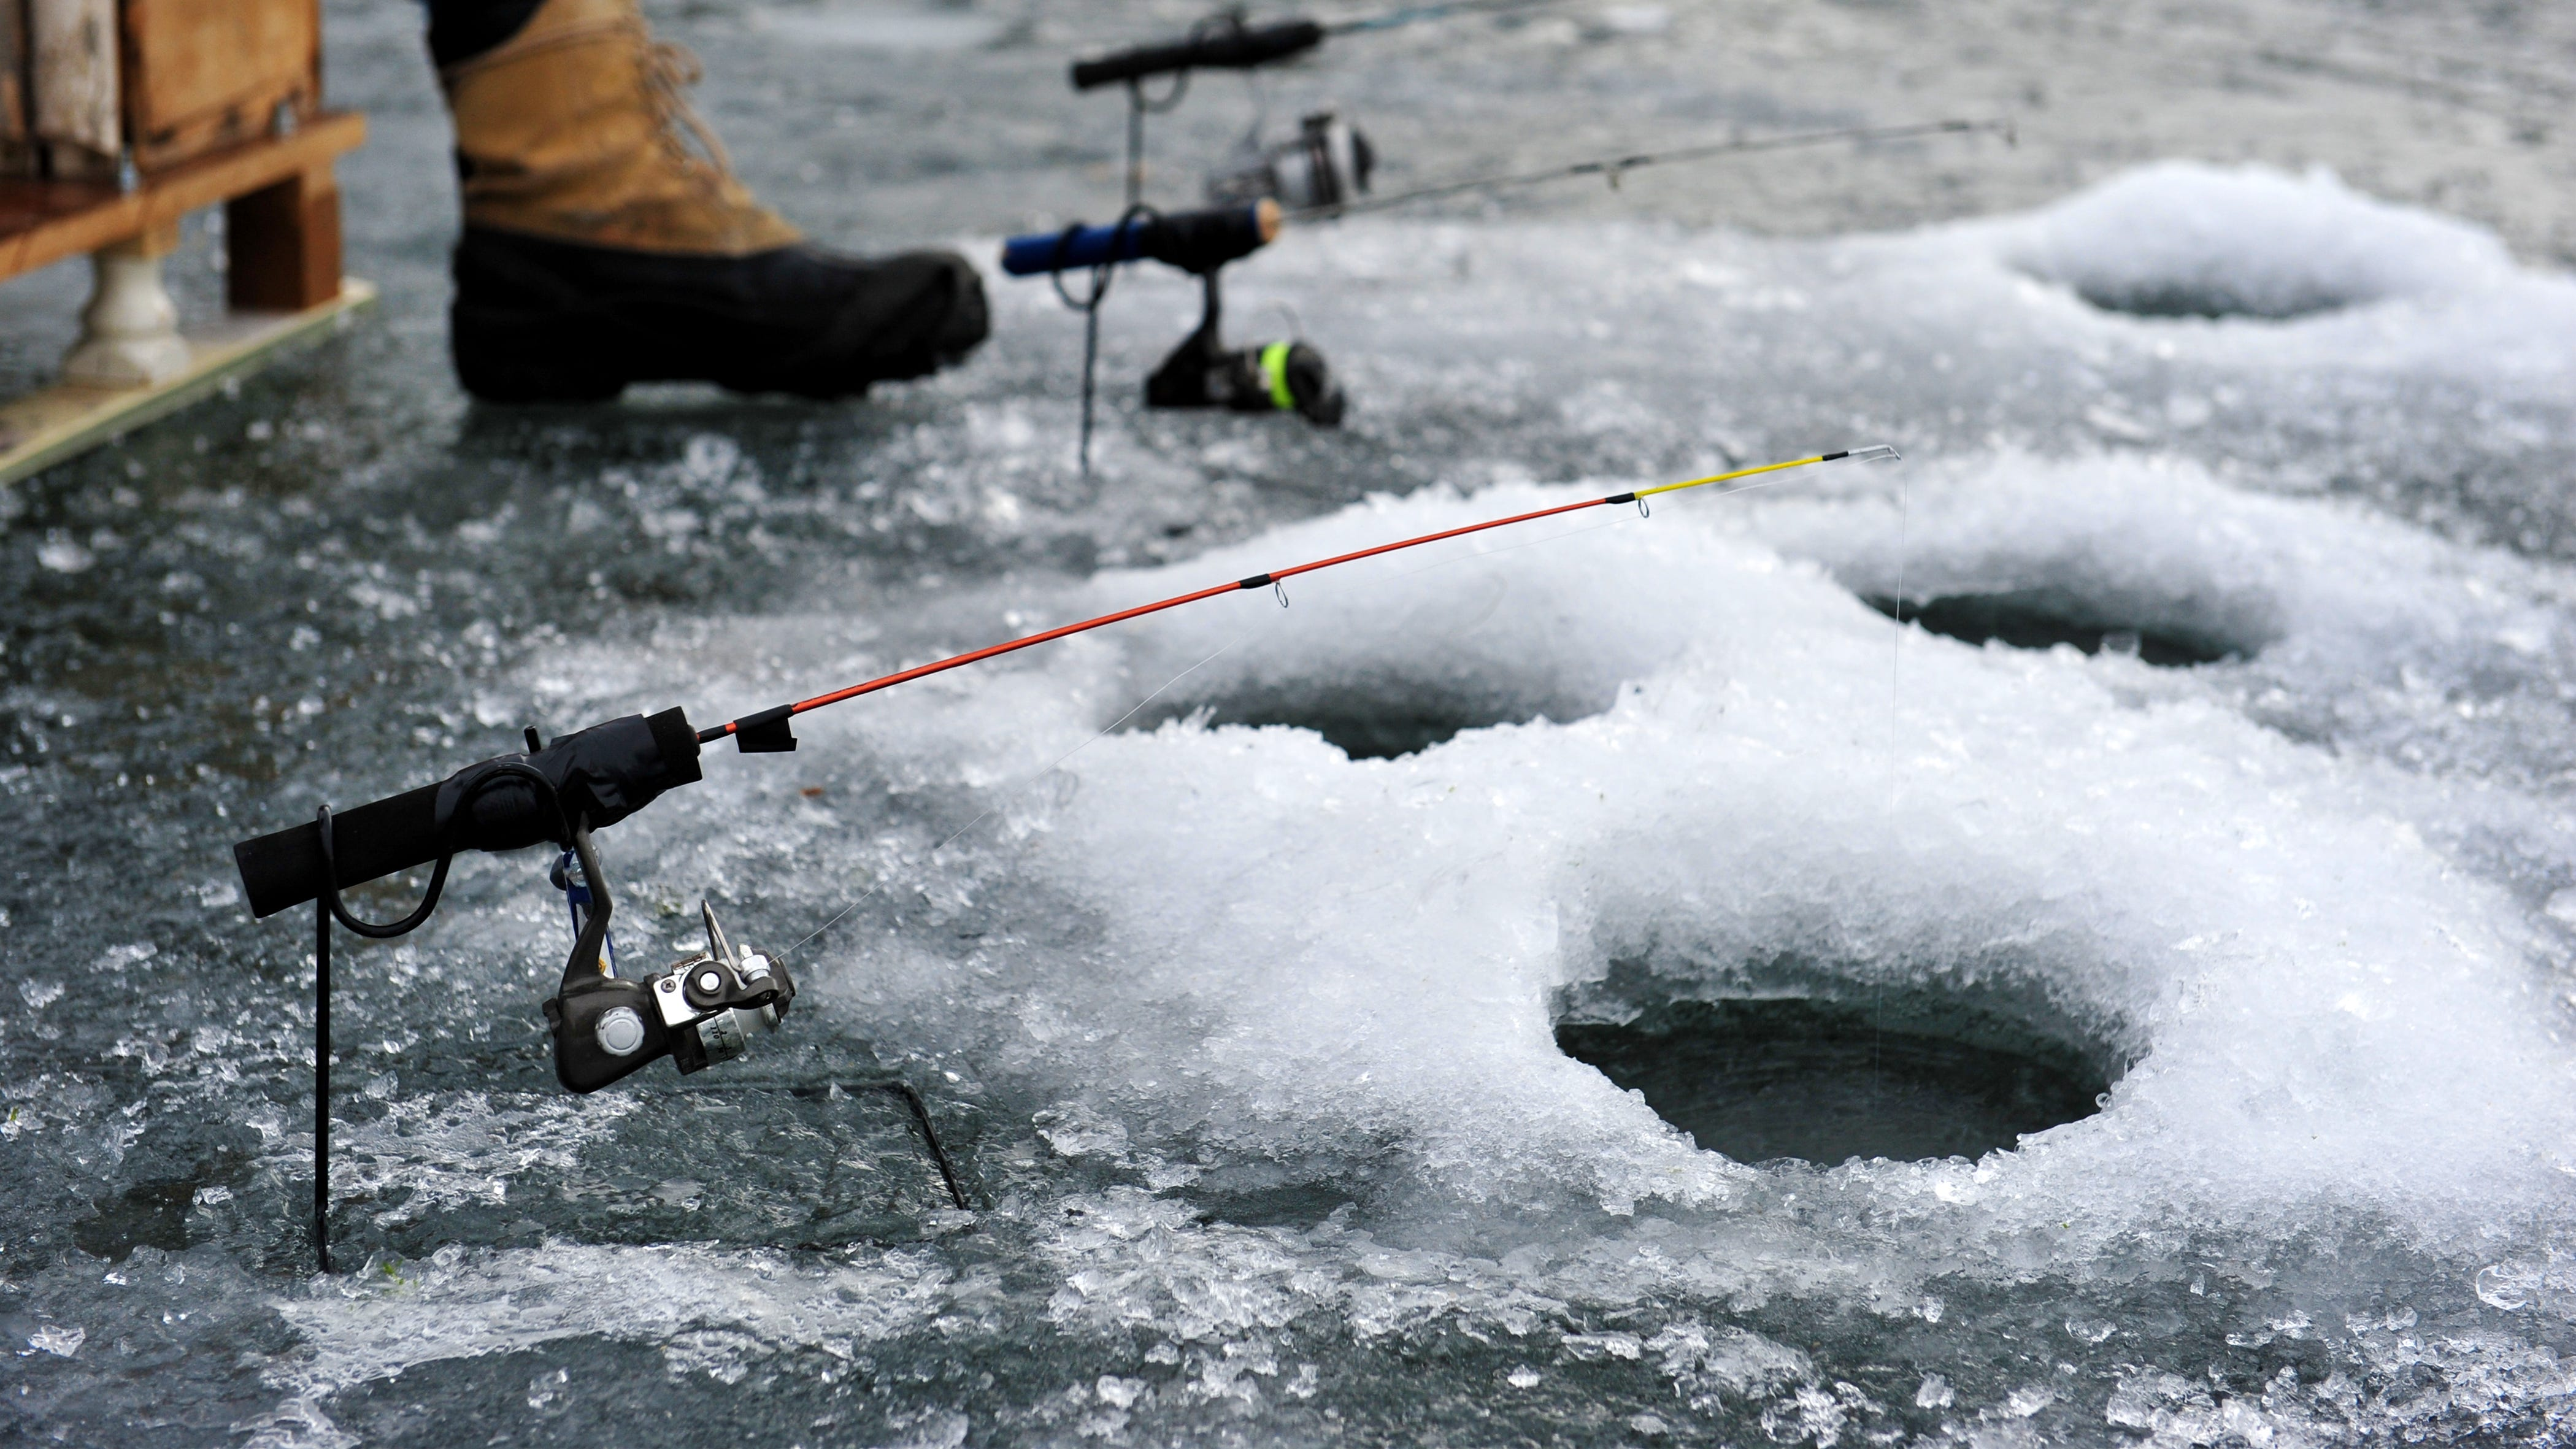 In this Tribune file photo, an angler patiently waits for a bite on one of his ice fishing poles at Holter Lake.